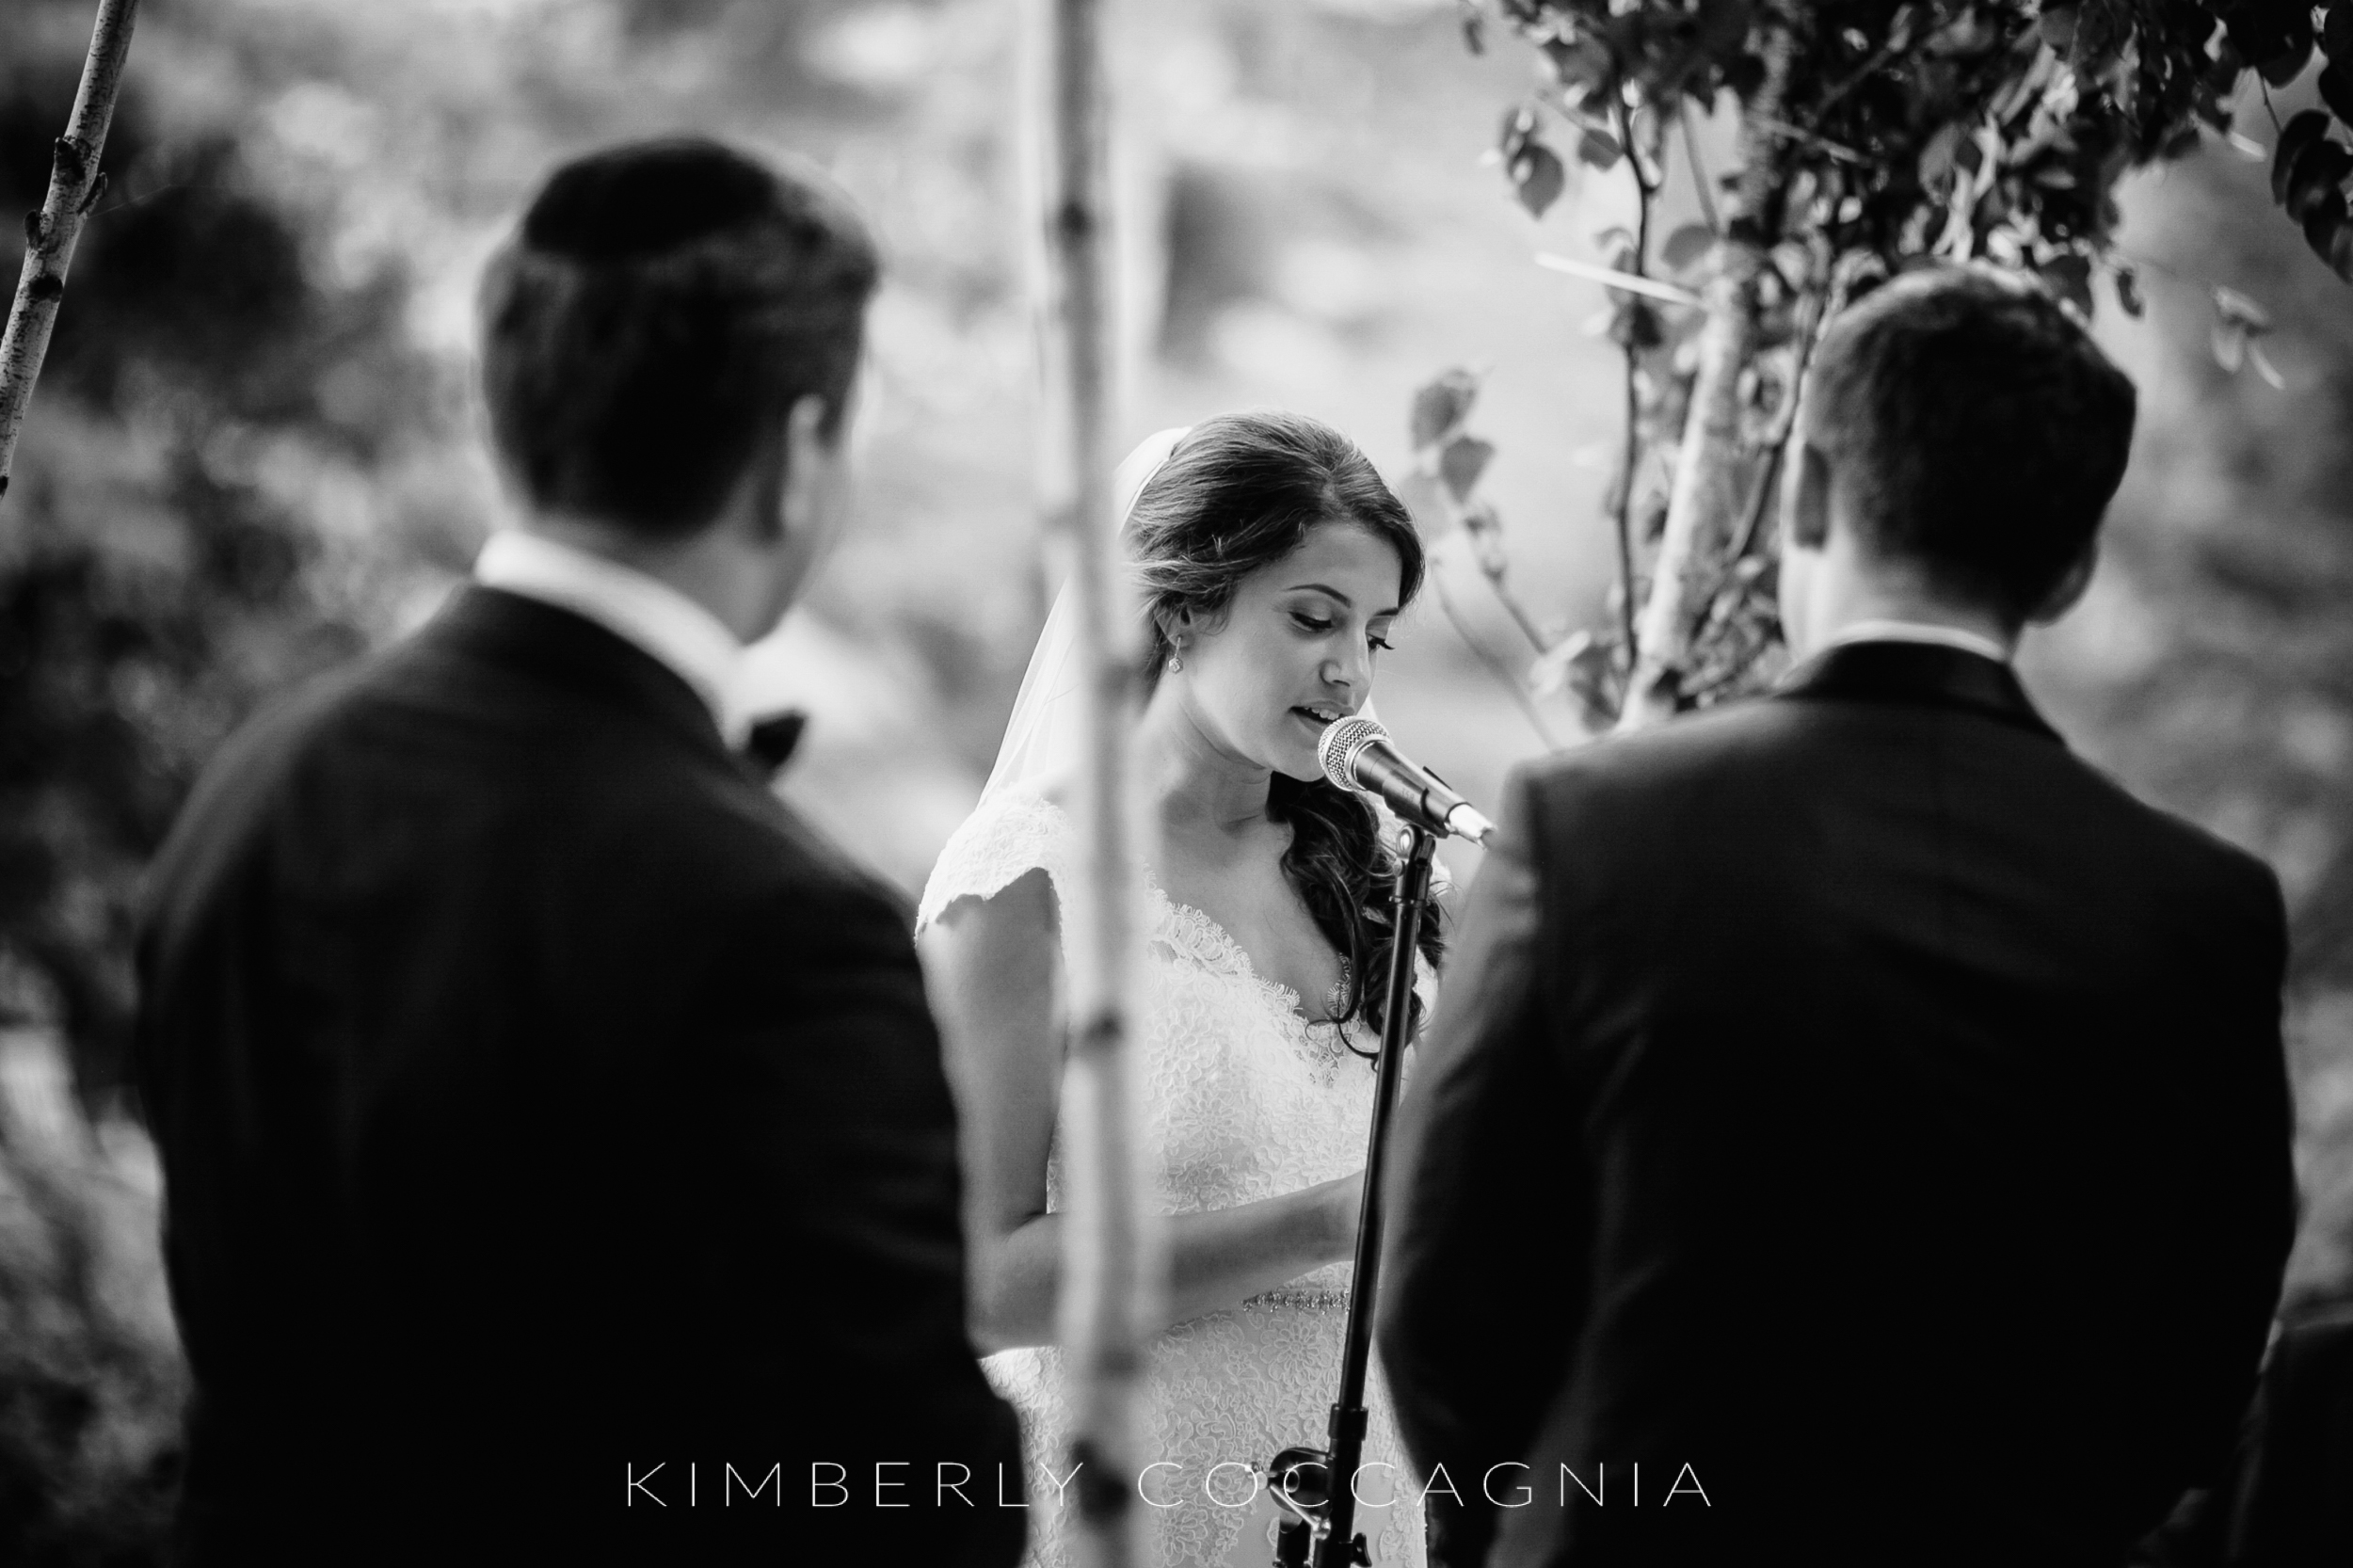 Kimberly+Coccagnia+Hudson+Valley+Wedding+Photographer-62.JPG